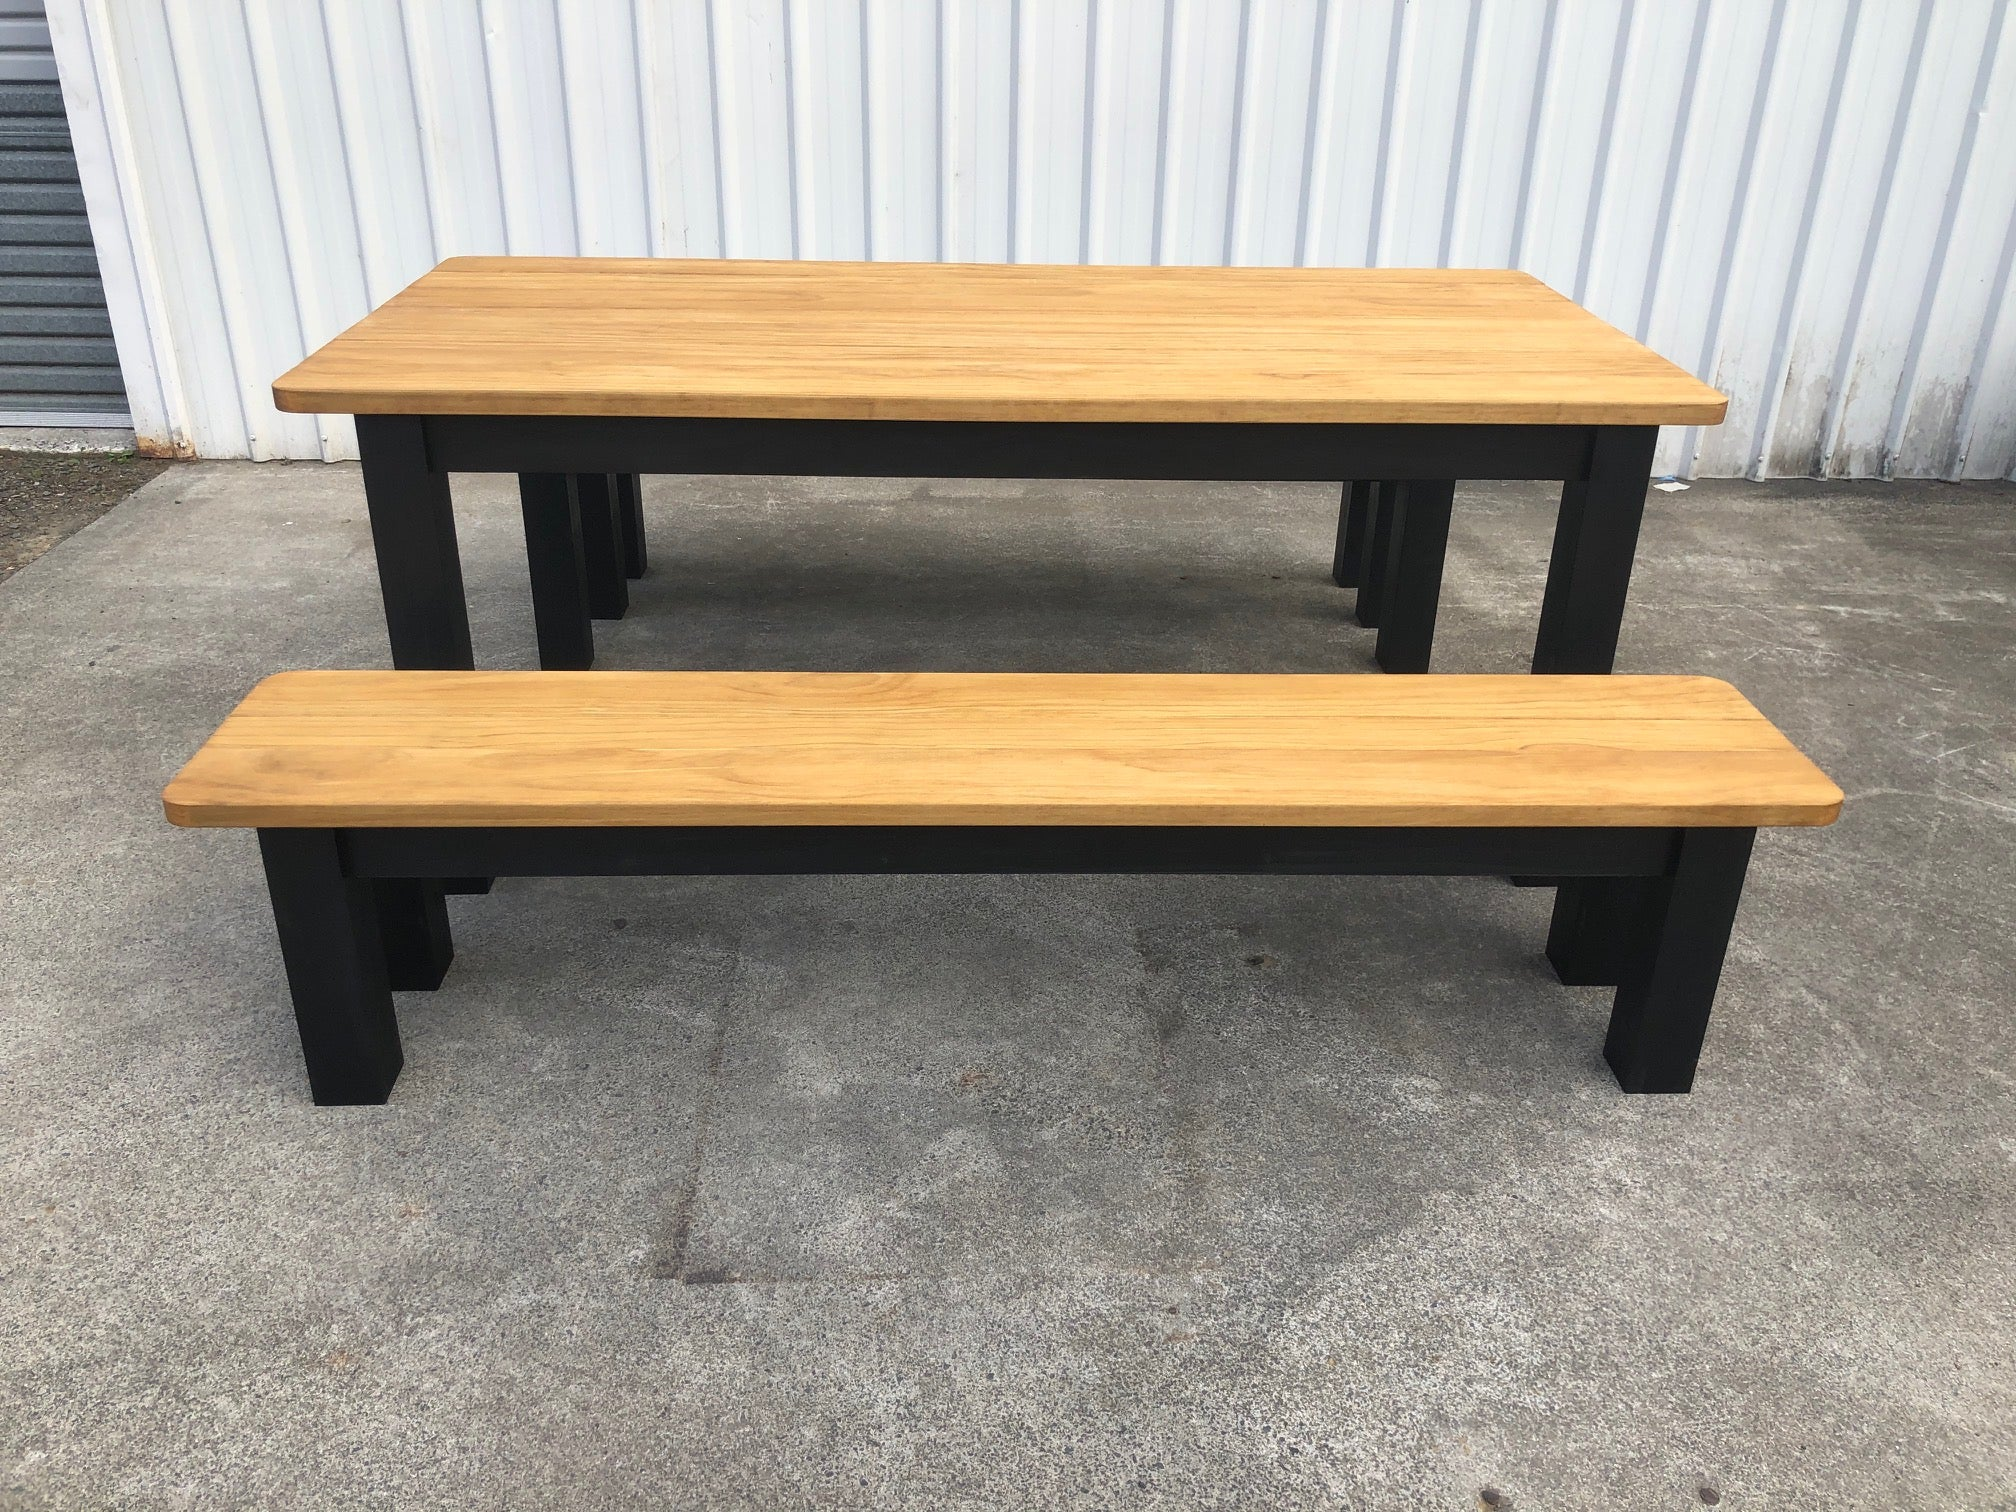 Picture of: Outdoor Table With Bench Seats Barleaners Co Nz